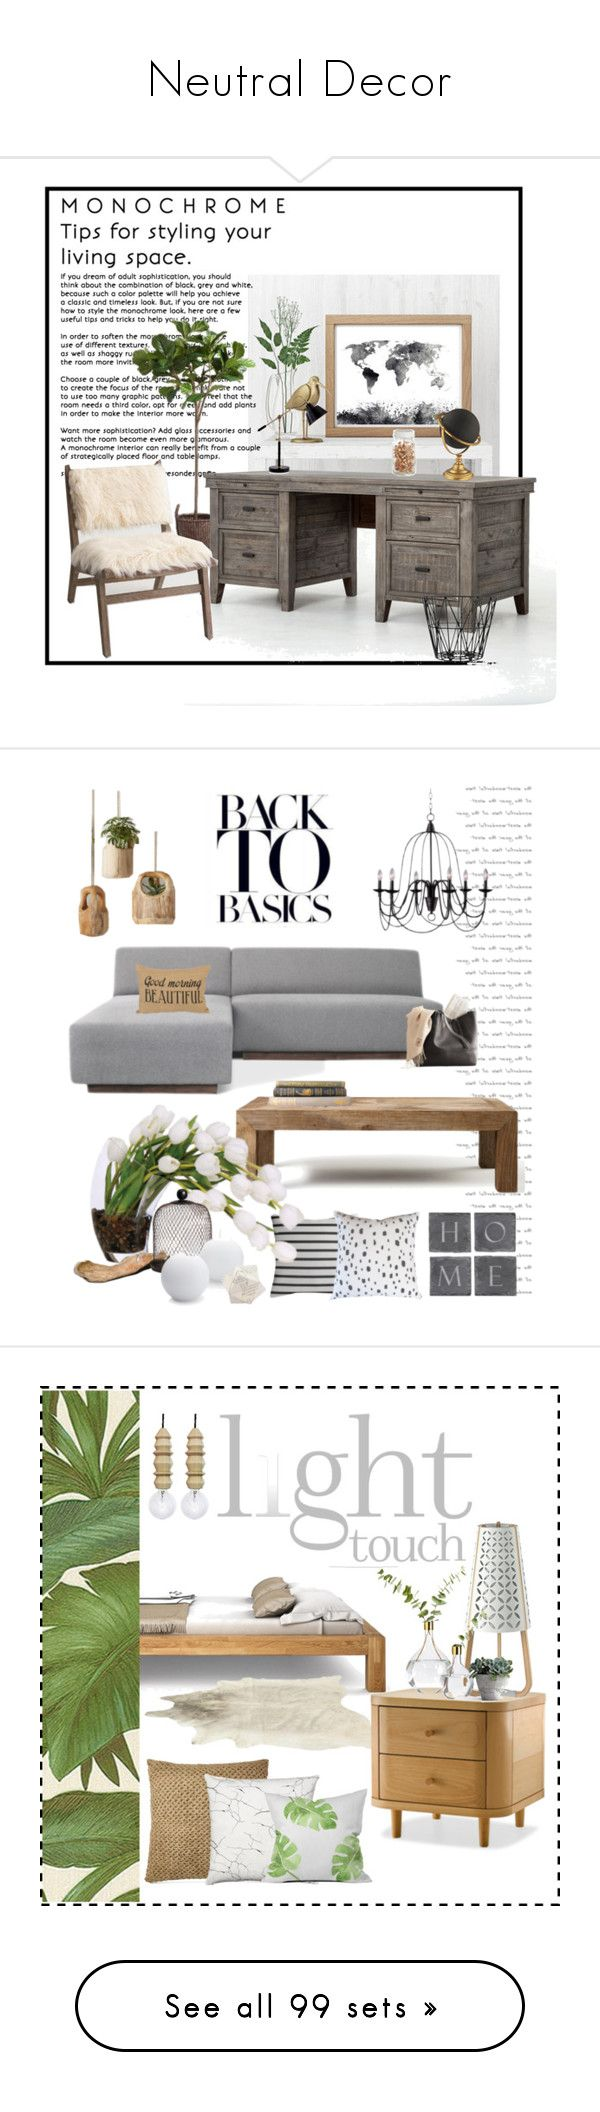 """Neutral Decor"" by doragutierrez ❤ liked on Polyvore featuring interior, interiors, interior design, home, home decor, interior decorating, Cost Plus World Market, ferm LIVING, Catalina and Flamant"